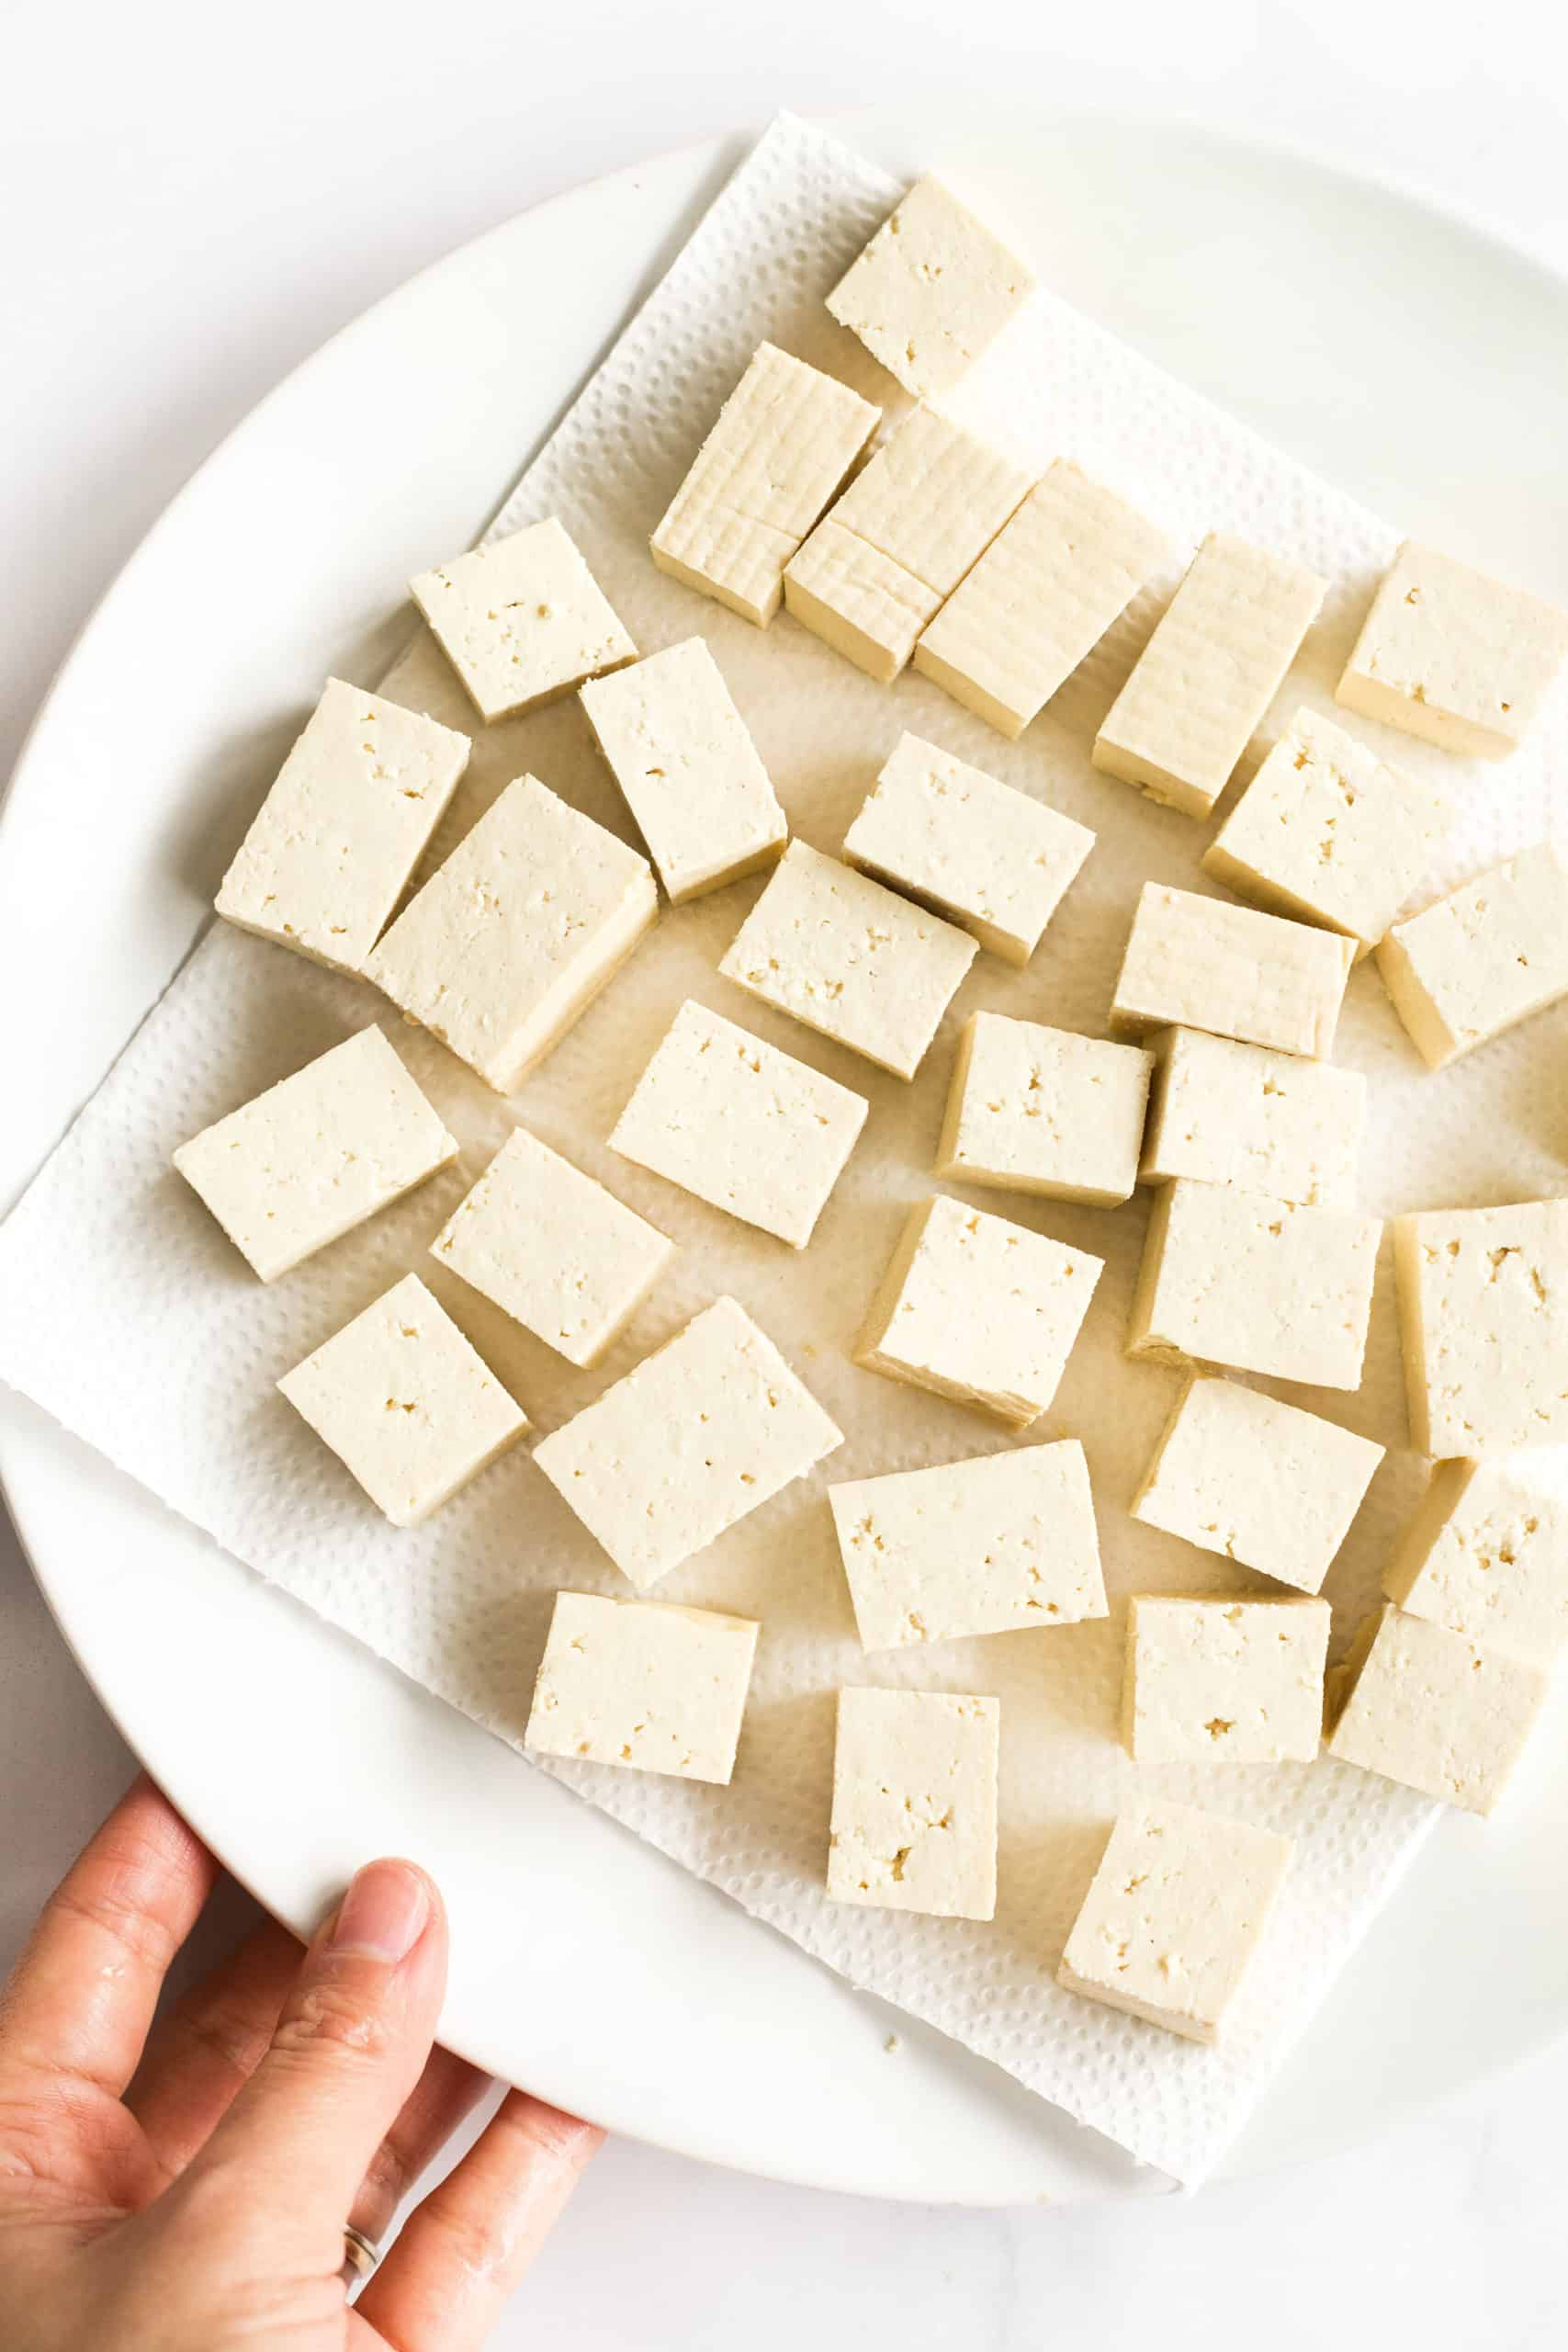 Tofu cubes on a paper towel-lined plate ready to be pressed.